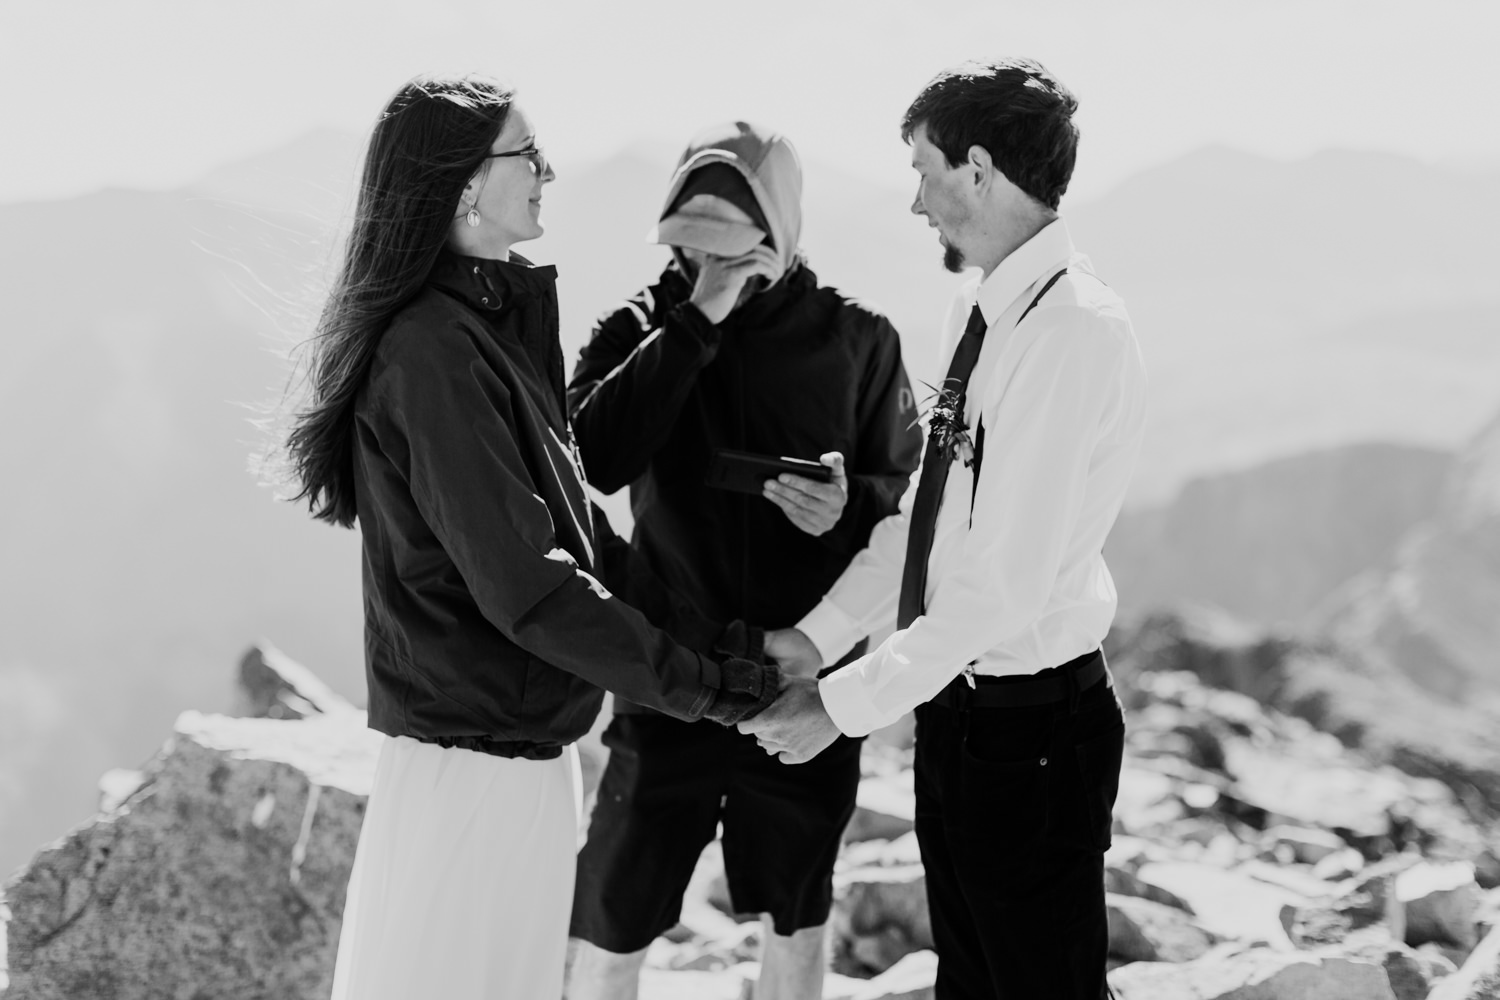 fourteener-adventure-wedding-photographer-72.jpg